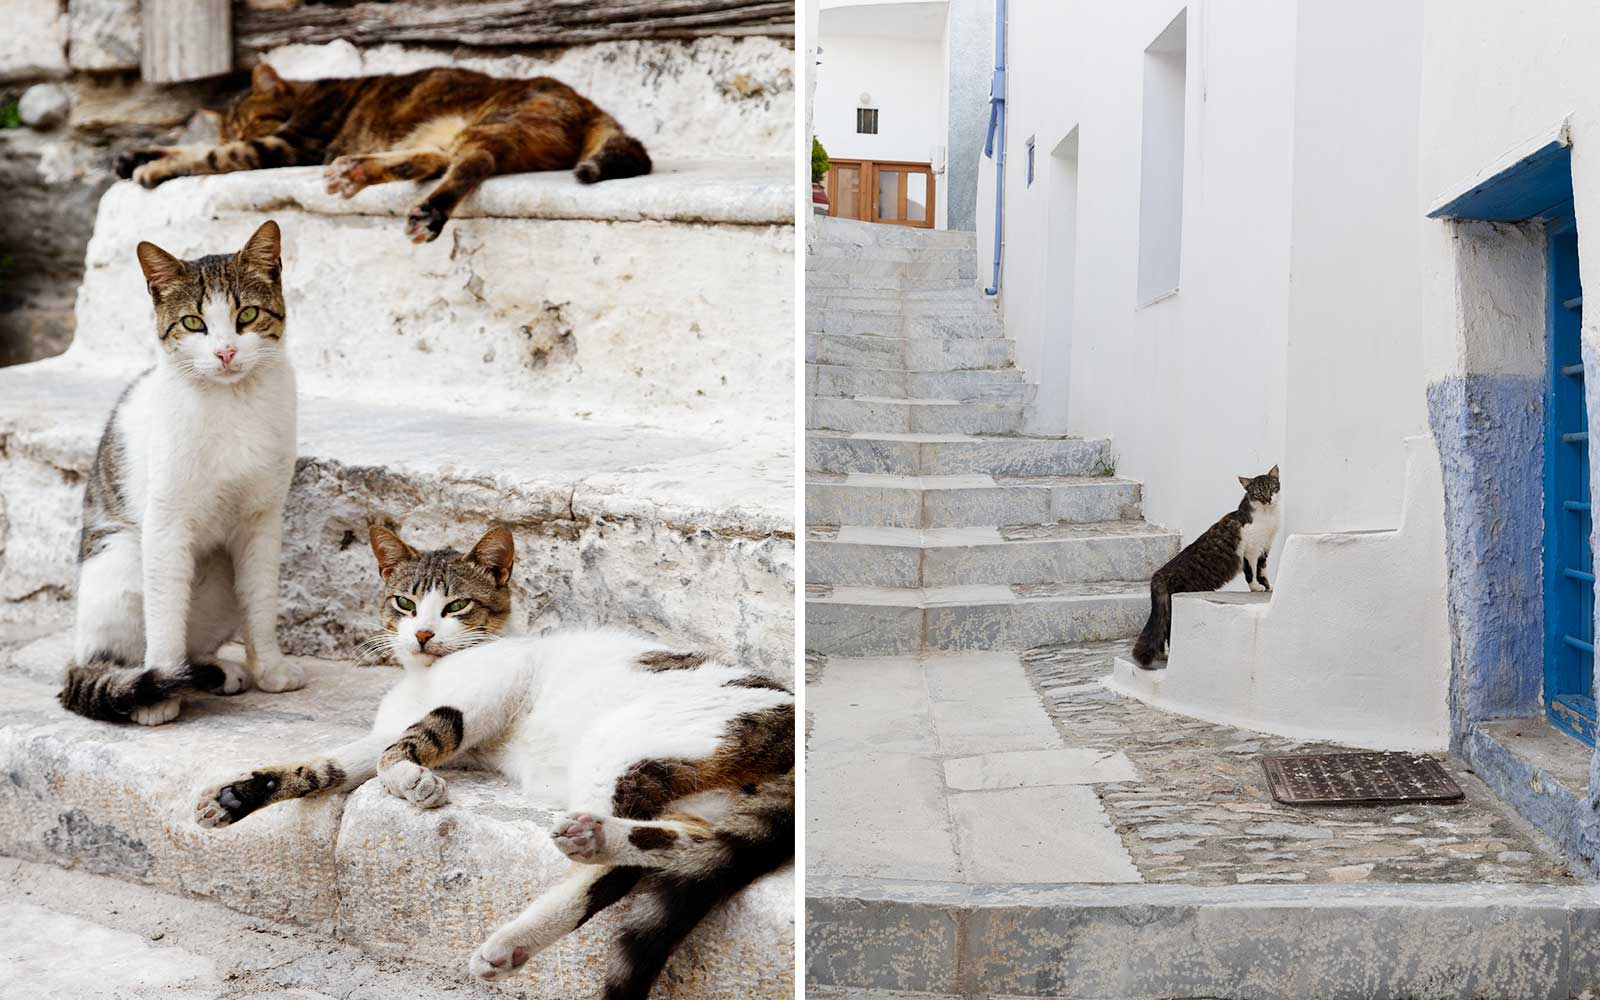 Cat carer job on Greek island paradise is flooded with applications